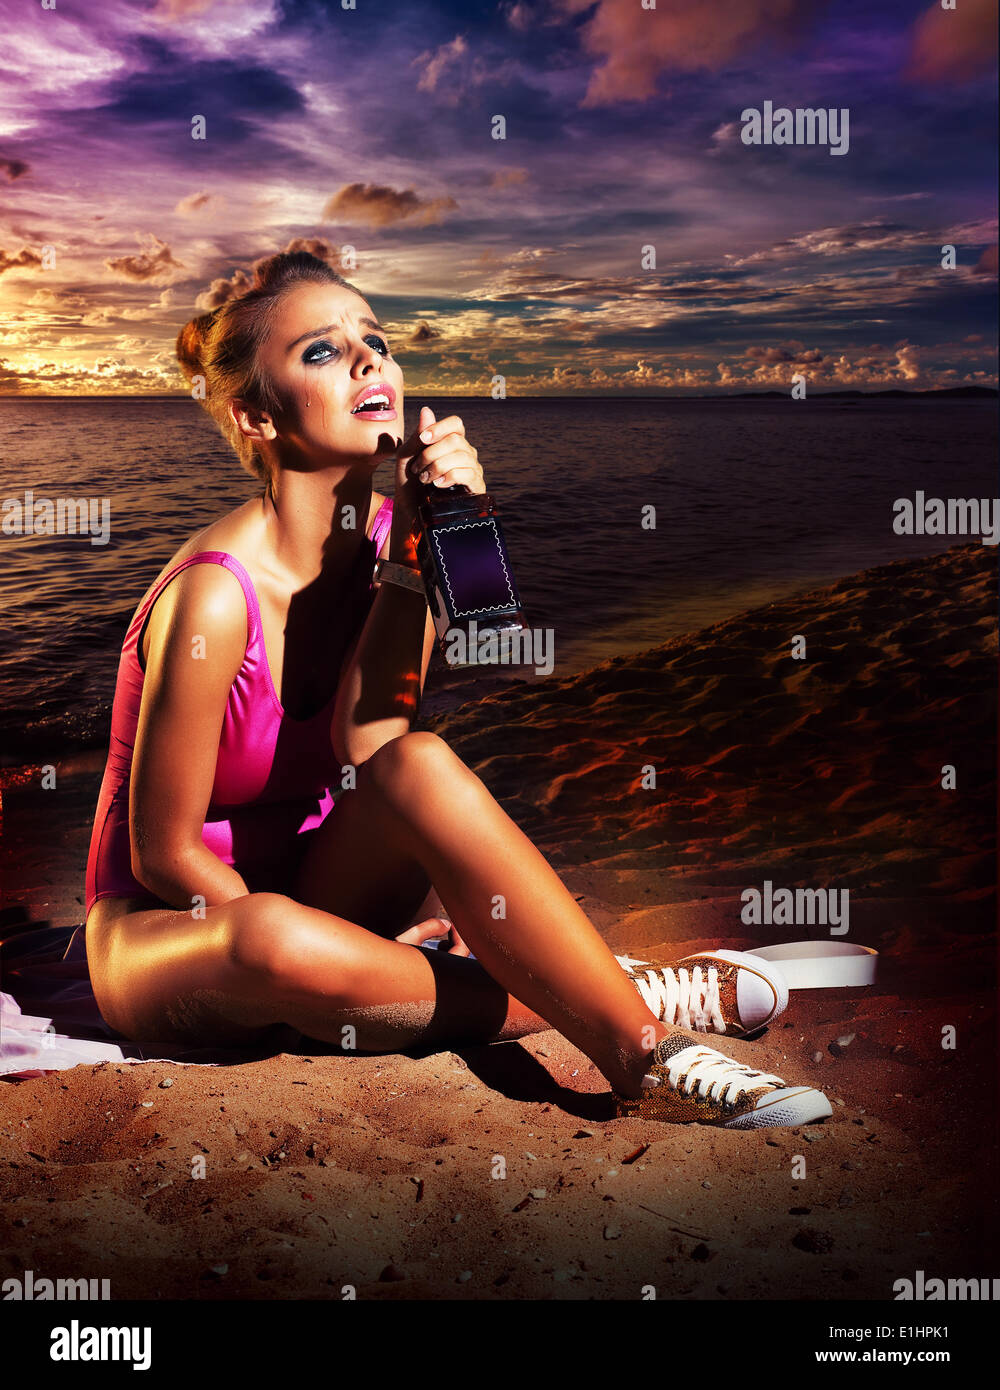 Beautiful young woman drinking booze on beach - alcoholism or other addiction - Stock Image